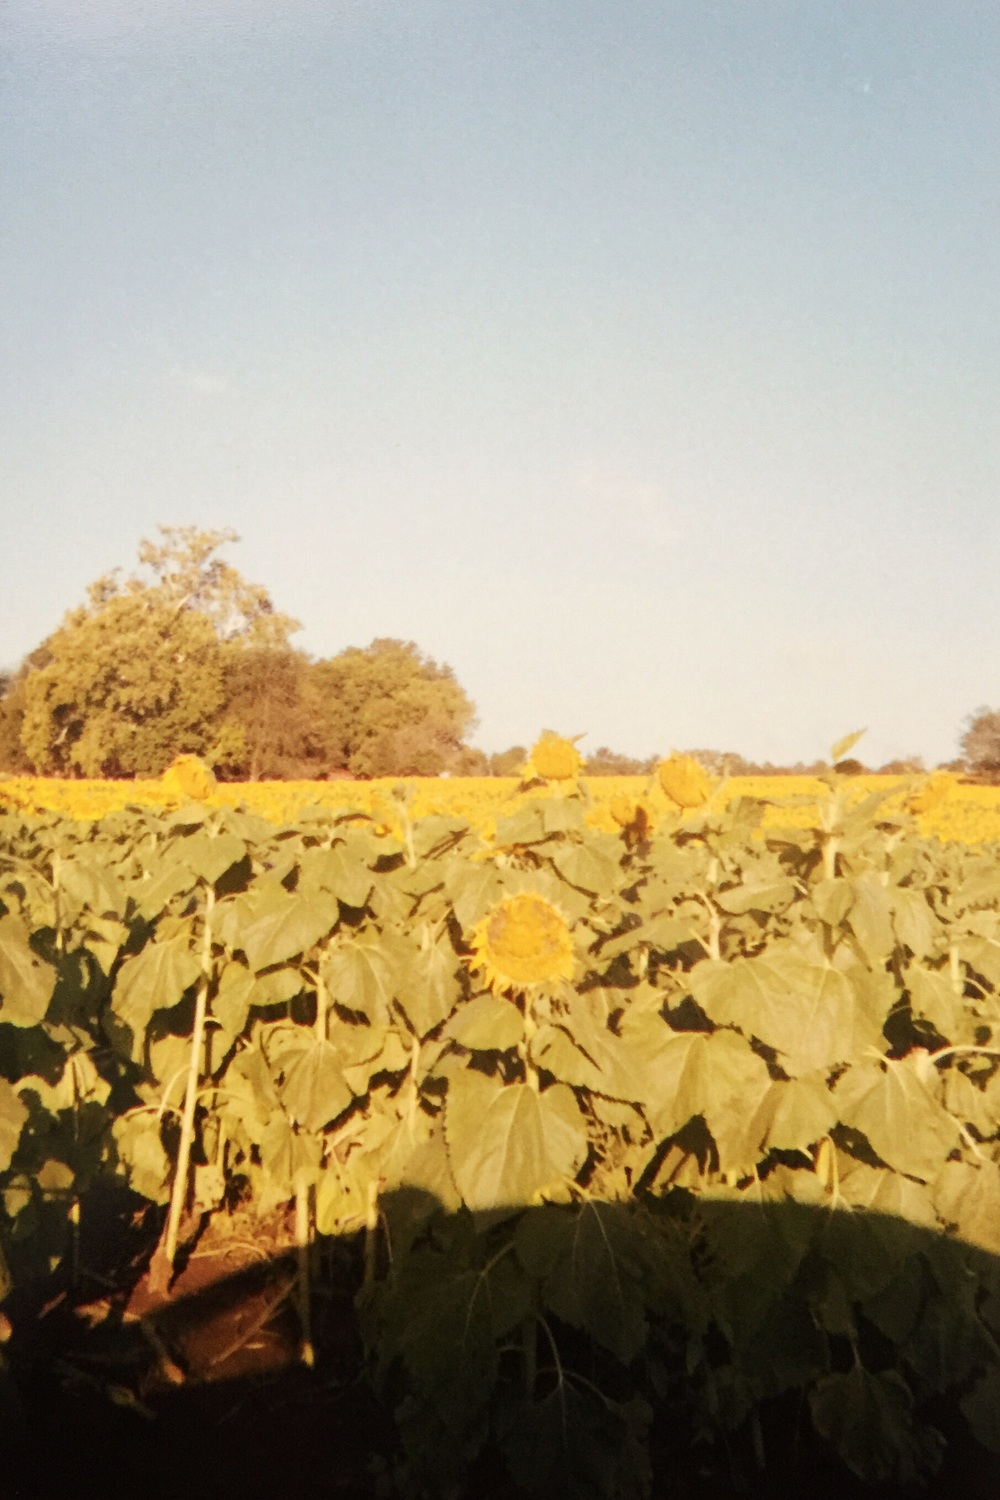 Sunflower fields in Kansas. We woke up before sunrise to see them at dawn.